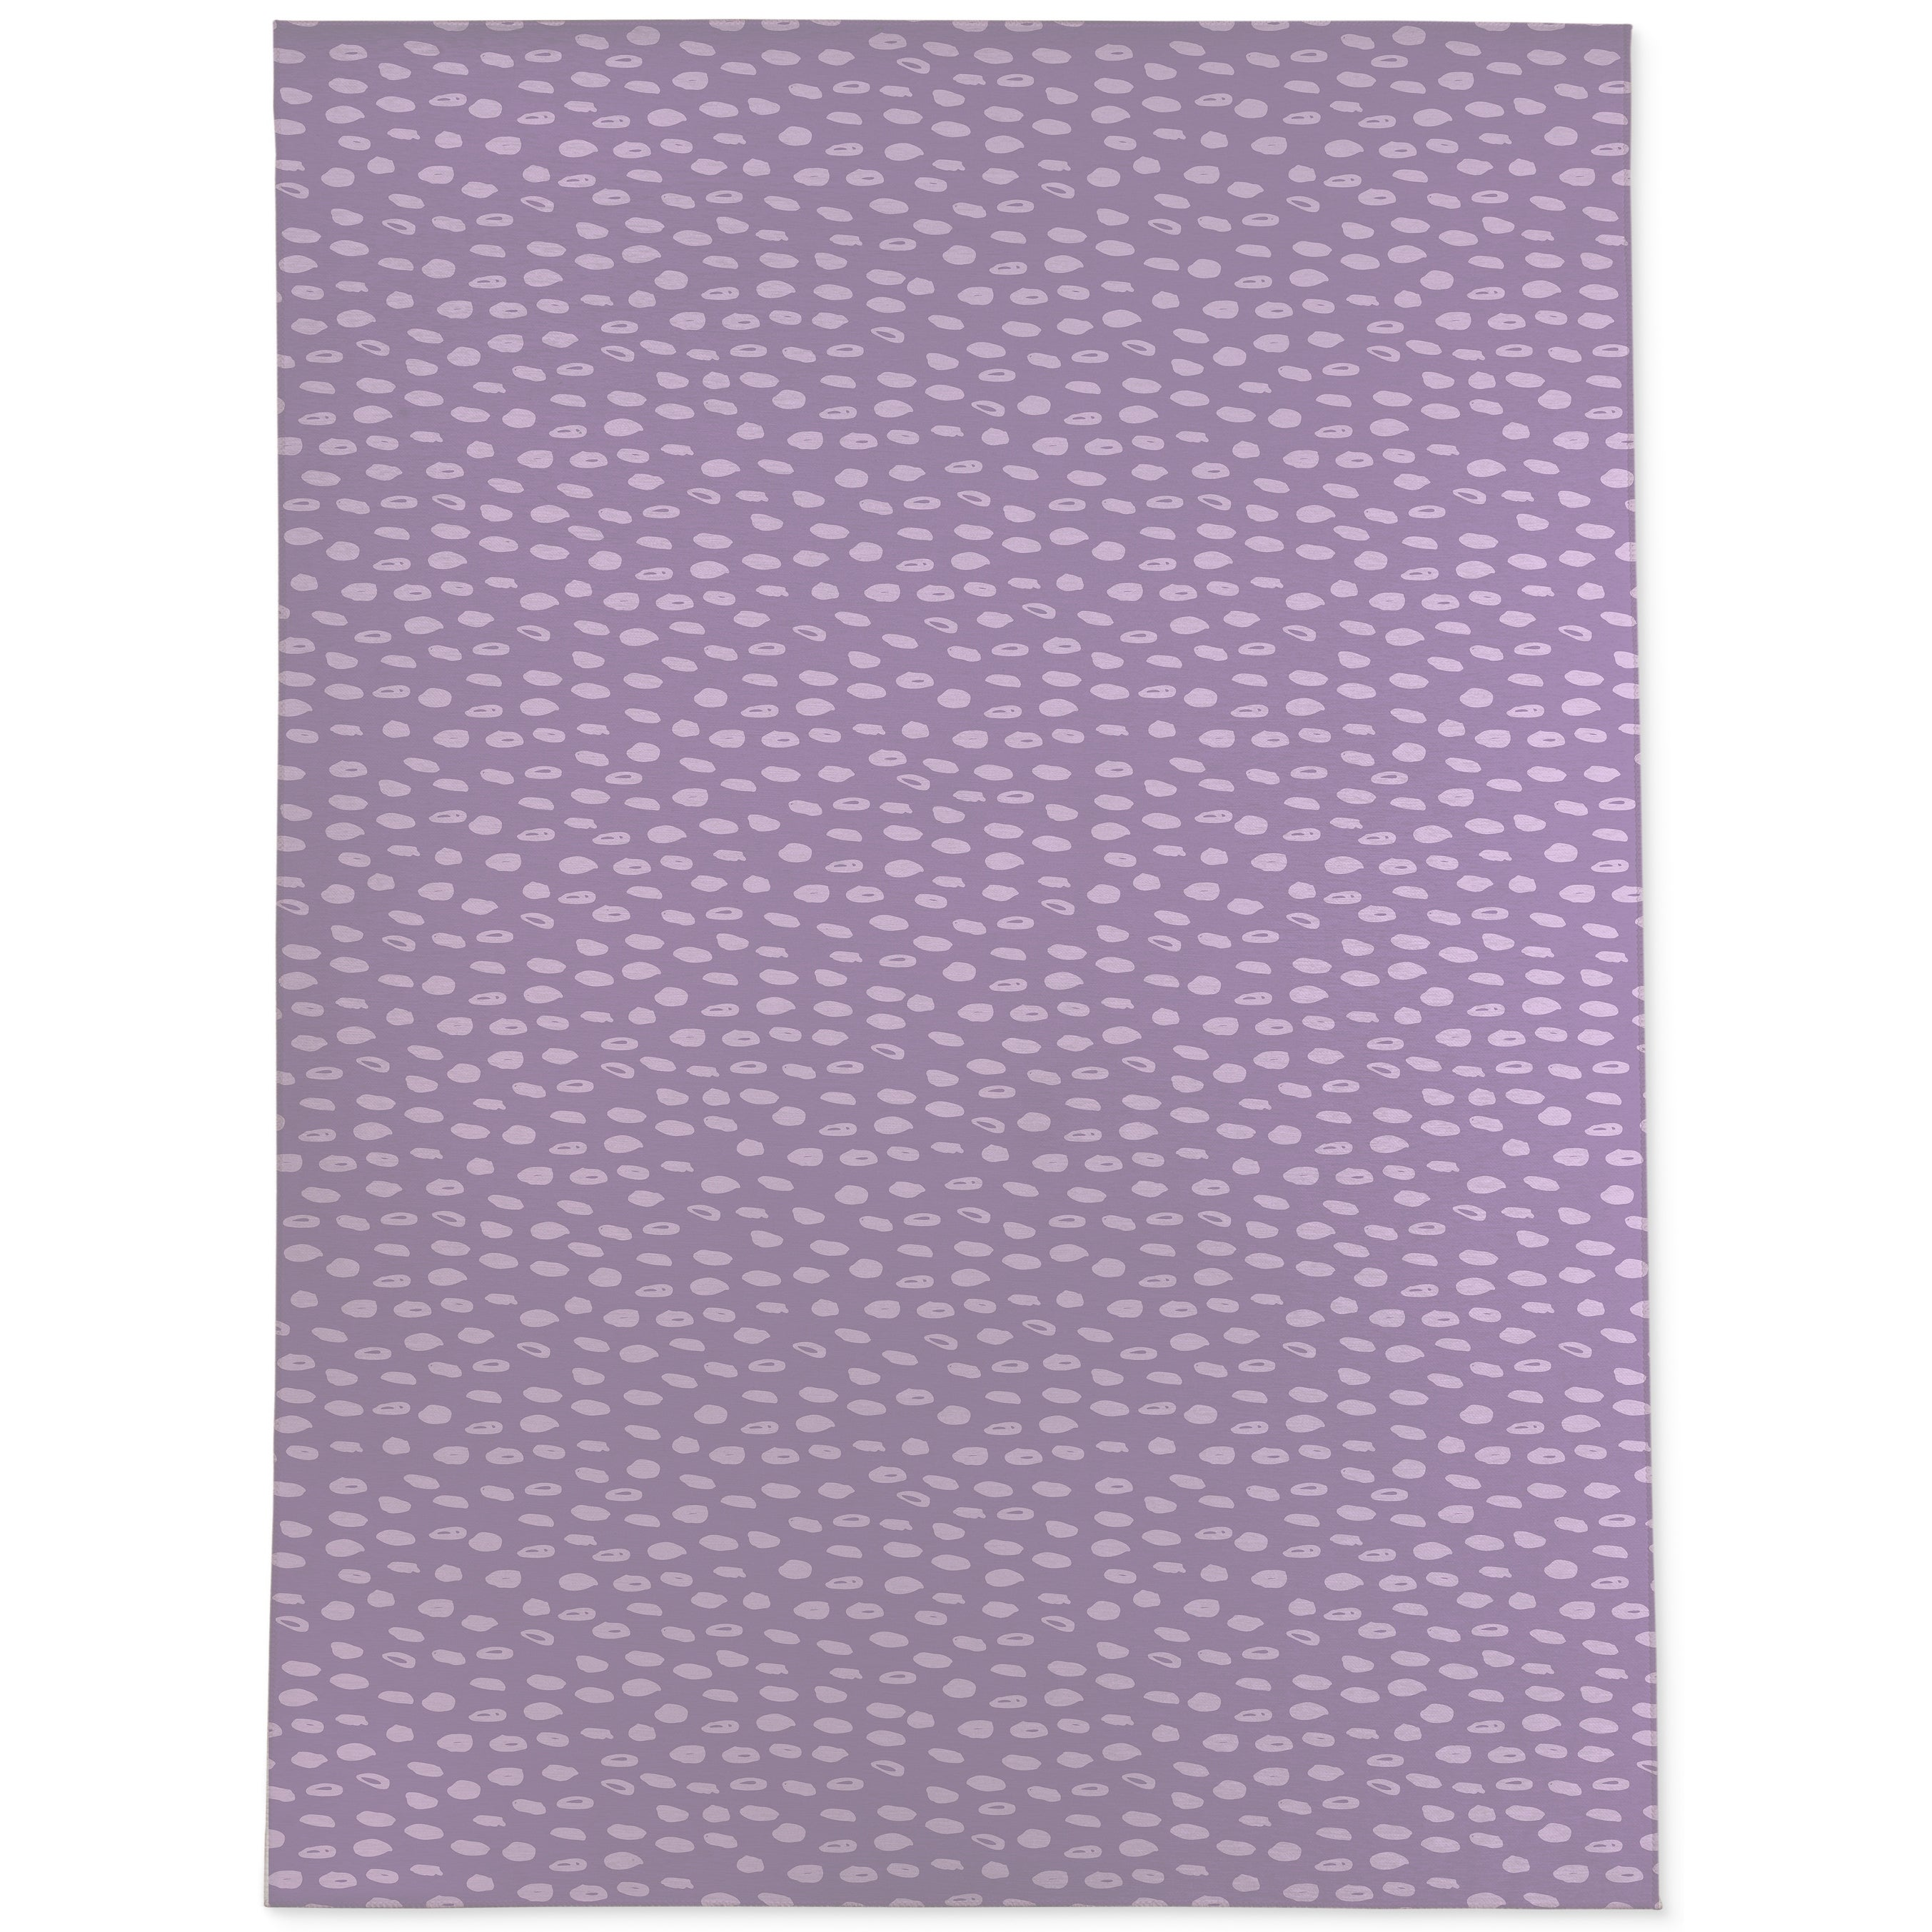 Polka Dot Abstract Lavender Area Rug By Kavka Designs Overstock 31888497